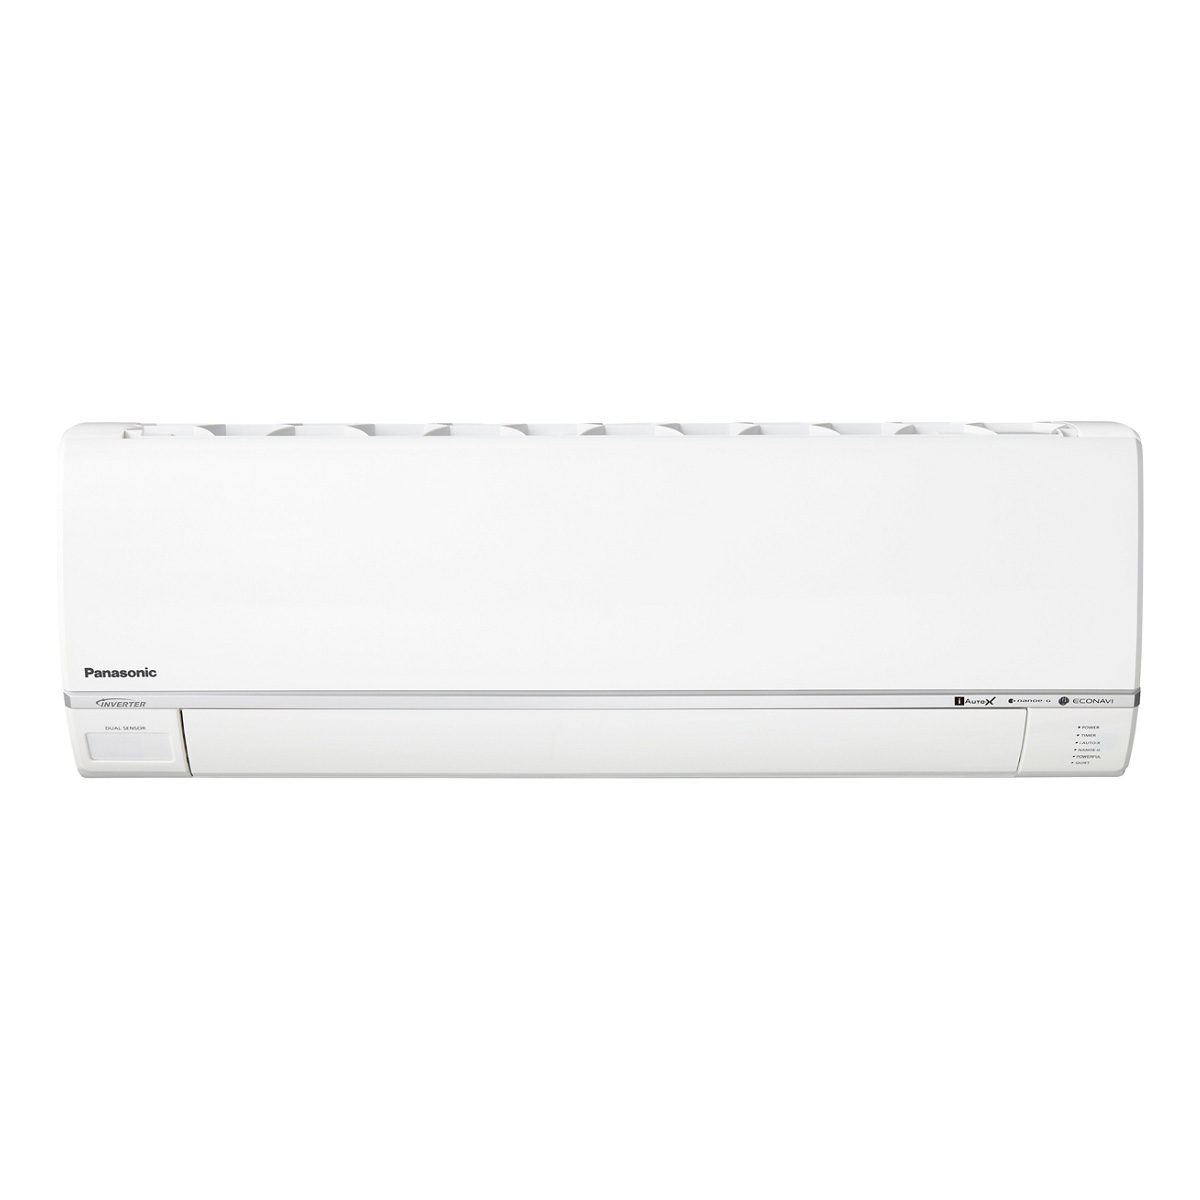 Panasonic CSCU-Z9RKR 2.5kw Reverse Cycle Split System Inverter Air Conditioner